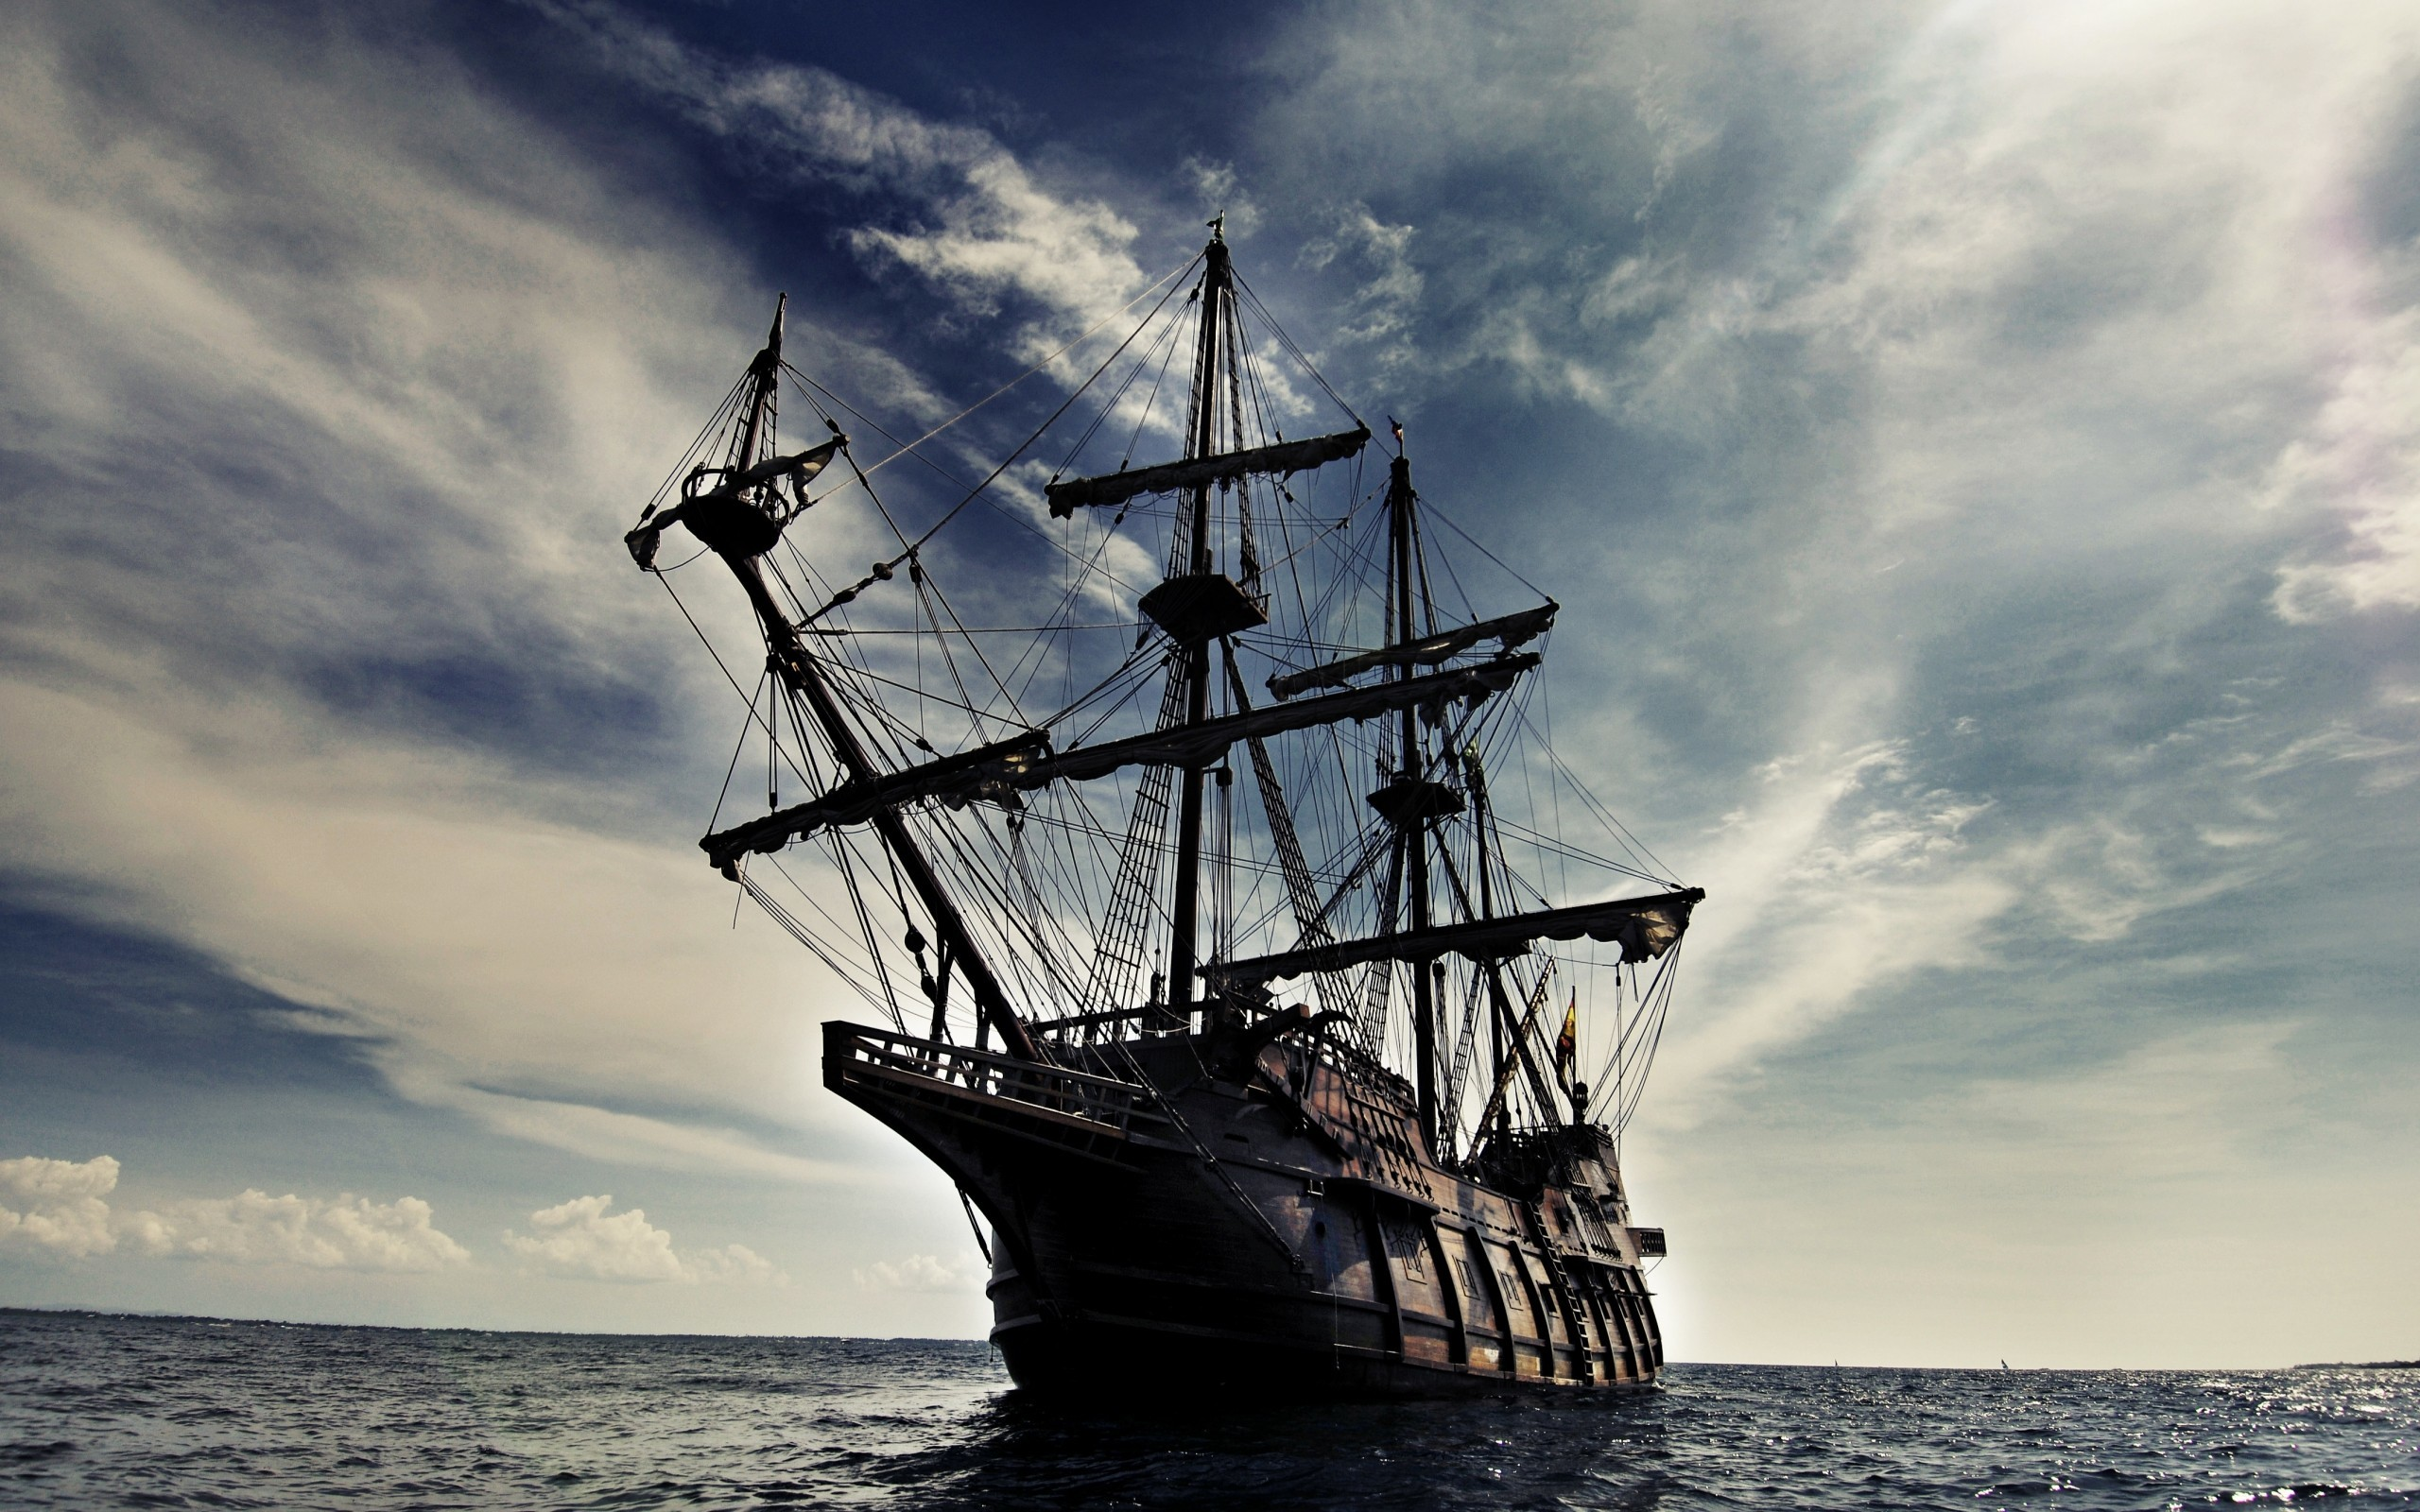 2560x1600 Pirate Ship Desktop Background Wallpaper with High Resolution  px  786.65 KB